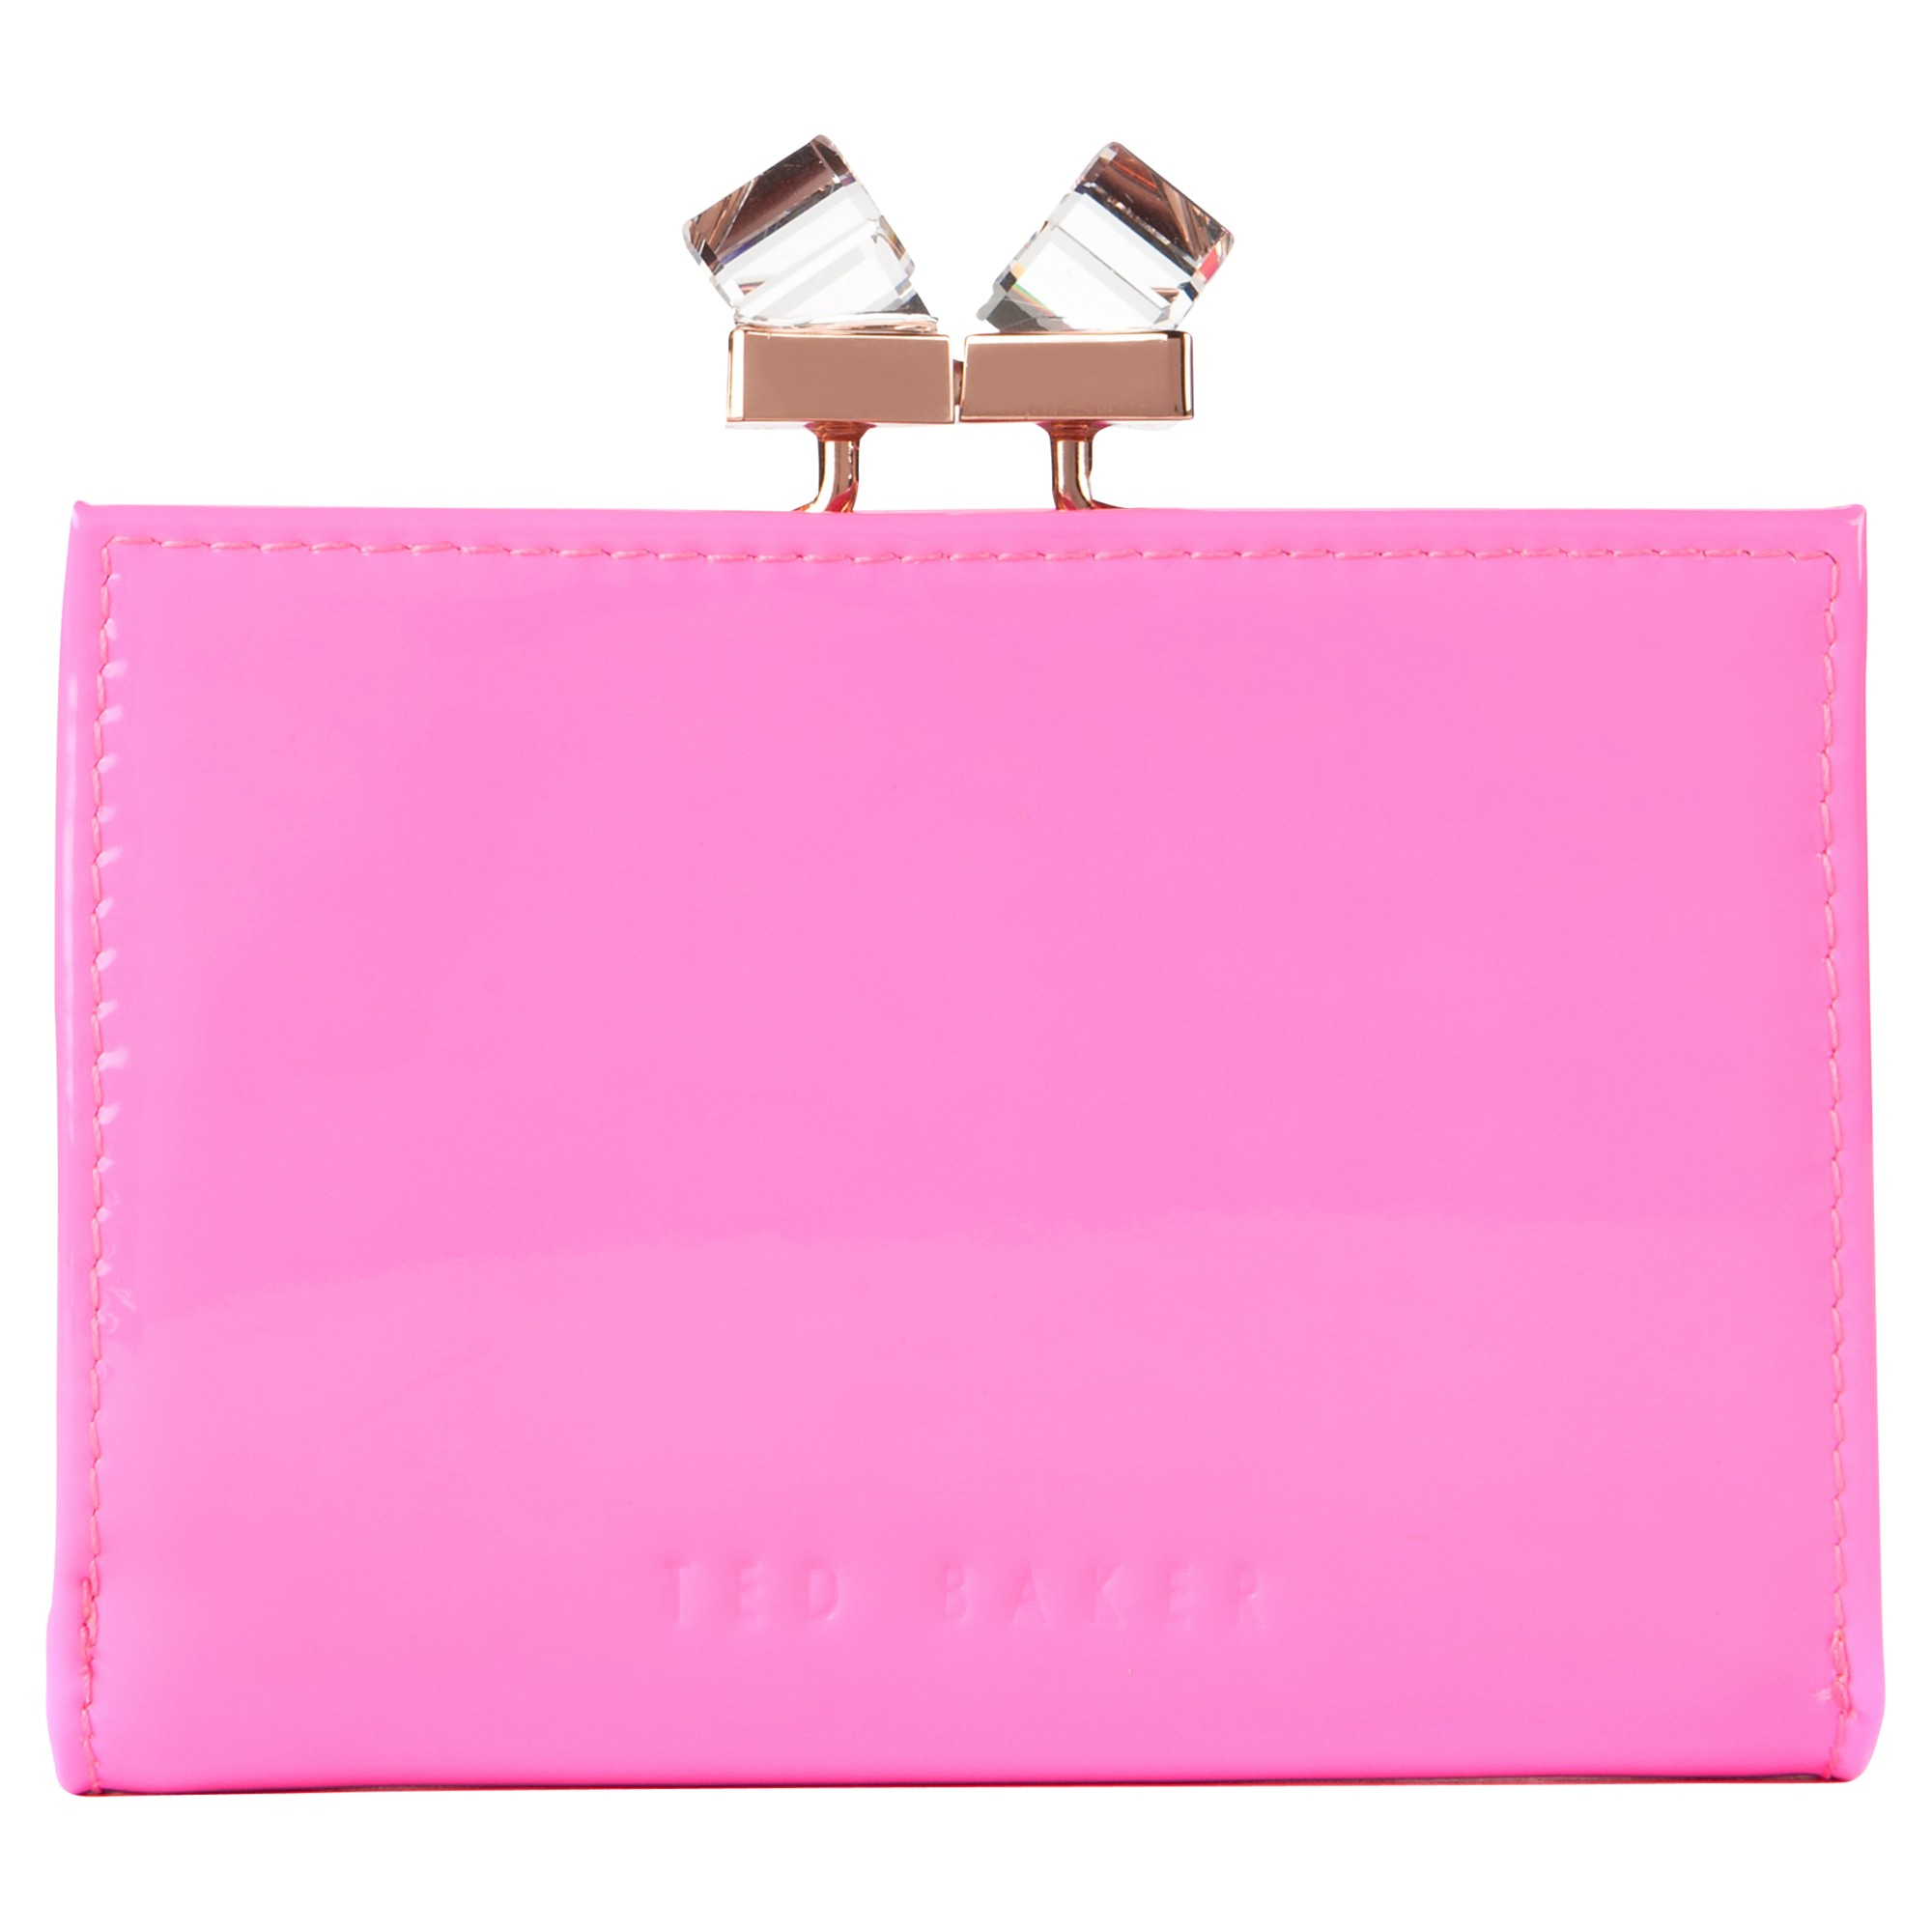 853456d9c7bcb0 Ted Baker Tanago Patent Leather Crystal Matinee Purse in Pink - Lyst